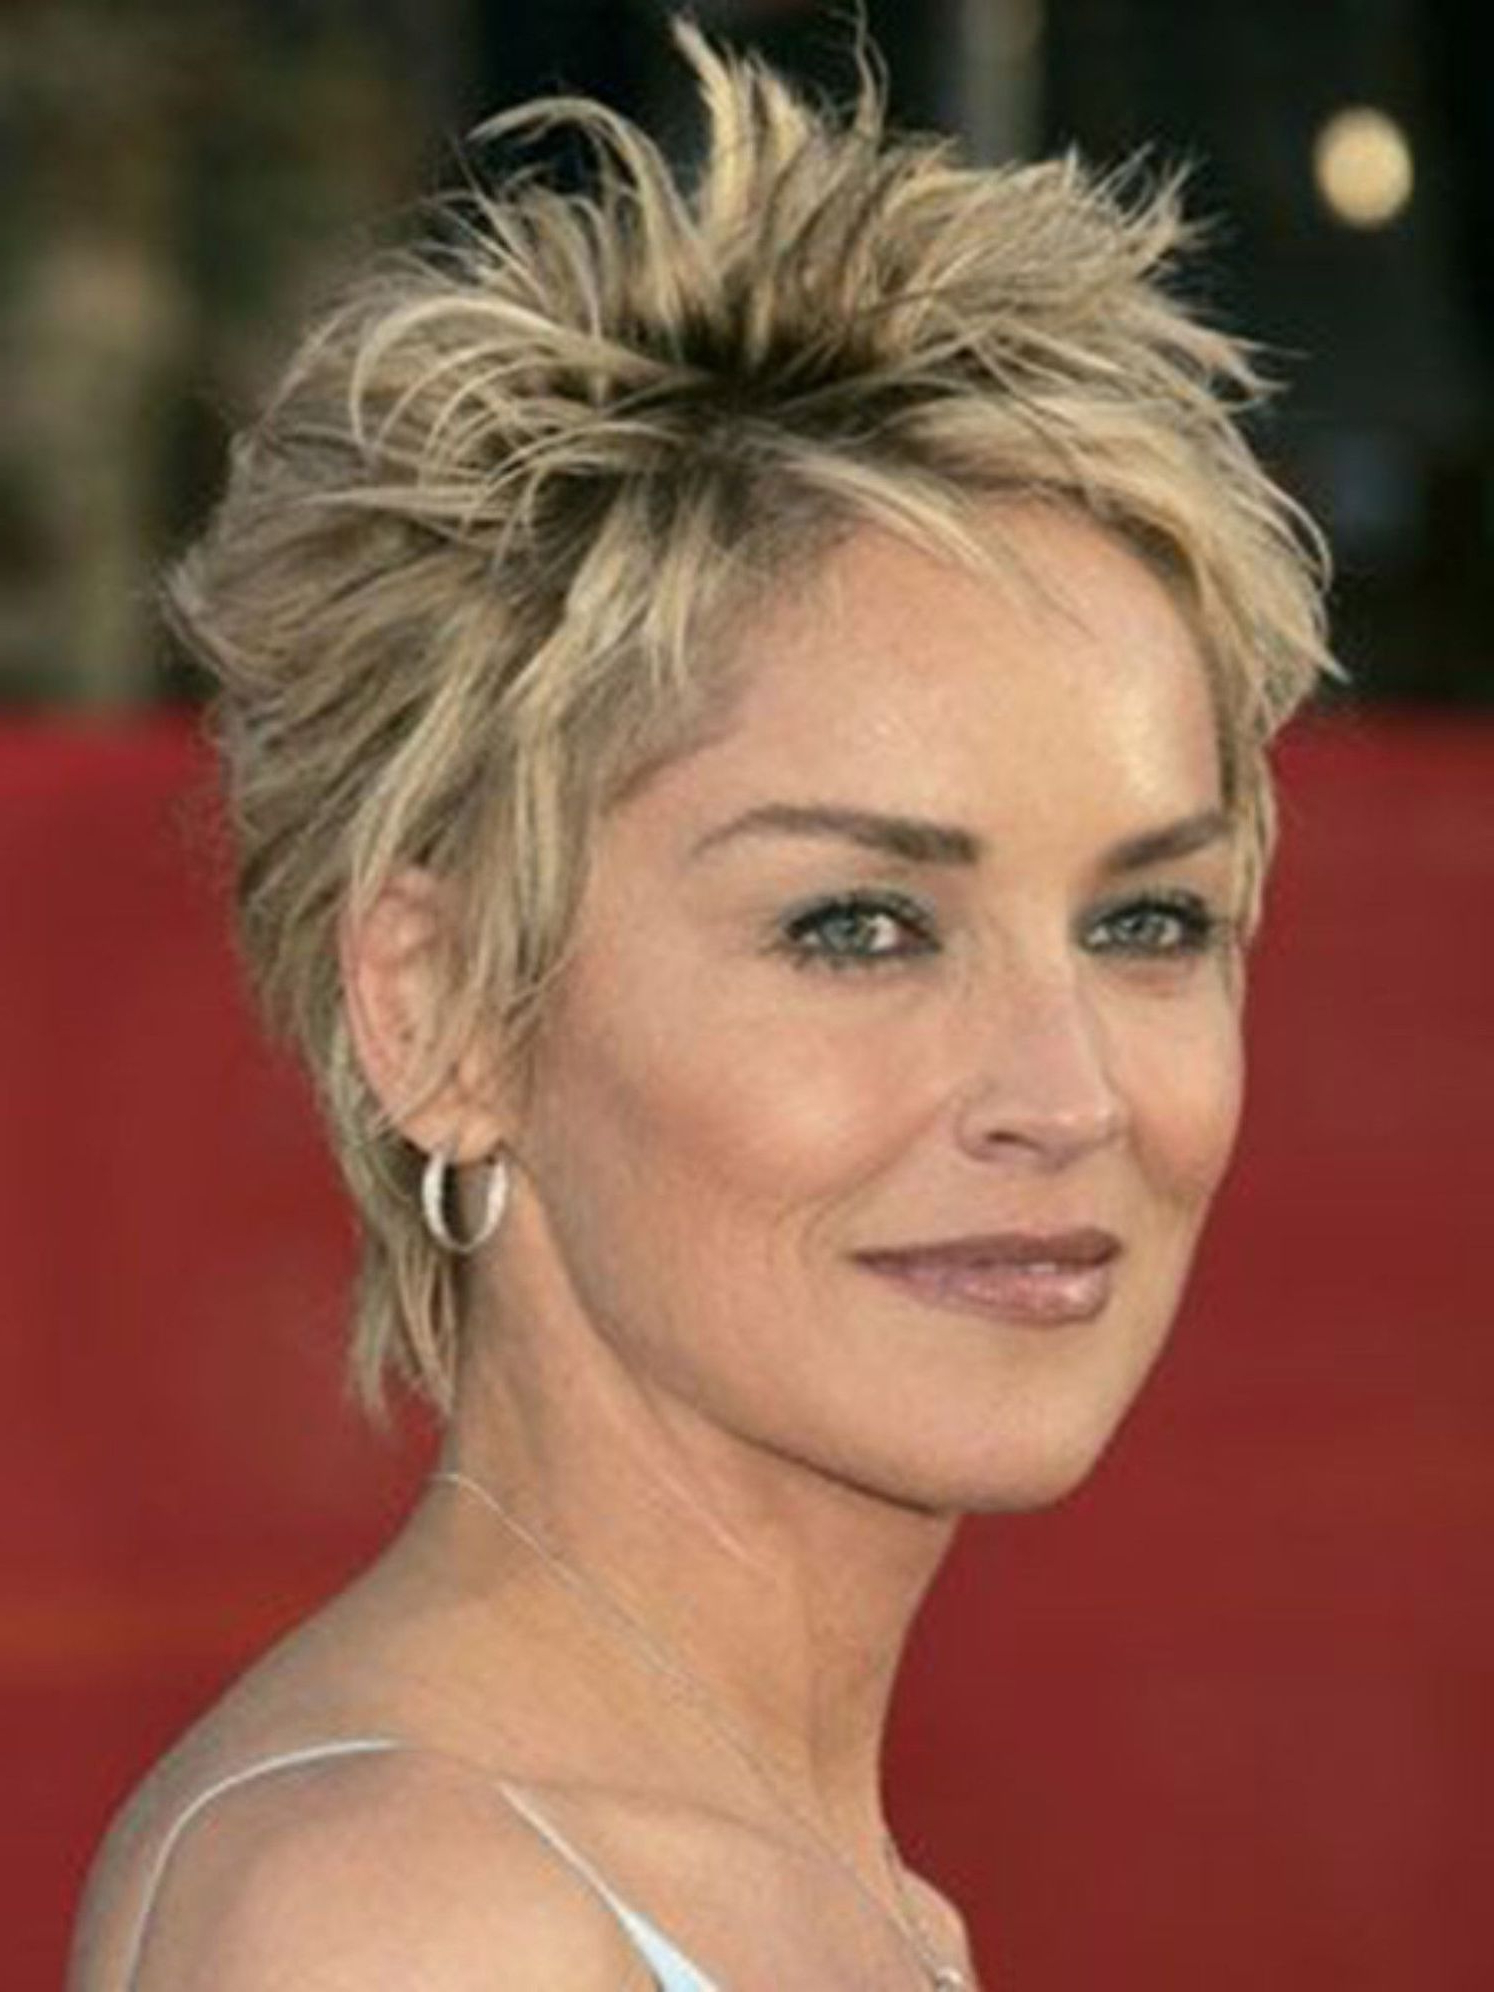 90 Classy And Simple Short Hairstyles For Women Over 50 | Haircuts Regarding Sharon Stone Short Haircuts (View 22 of 25)